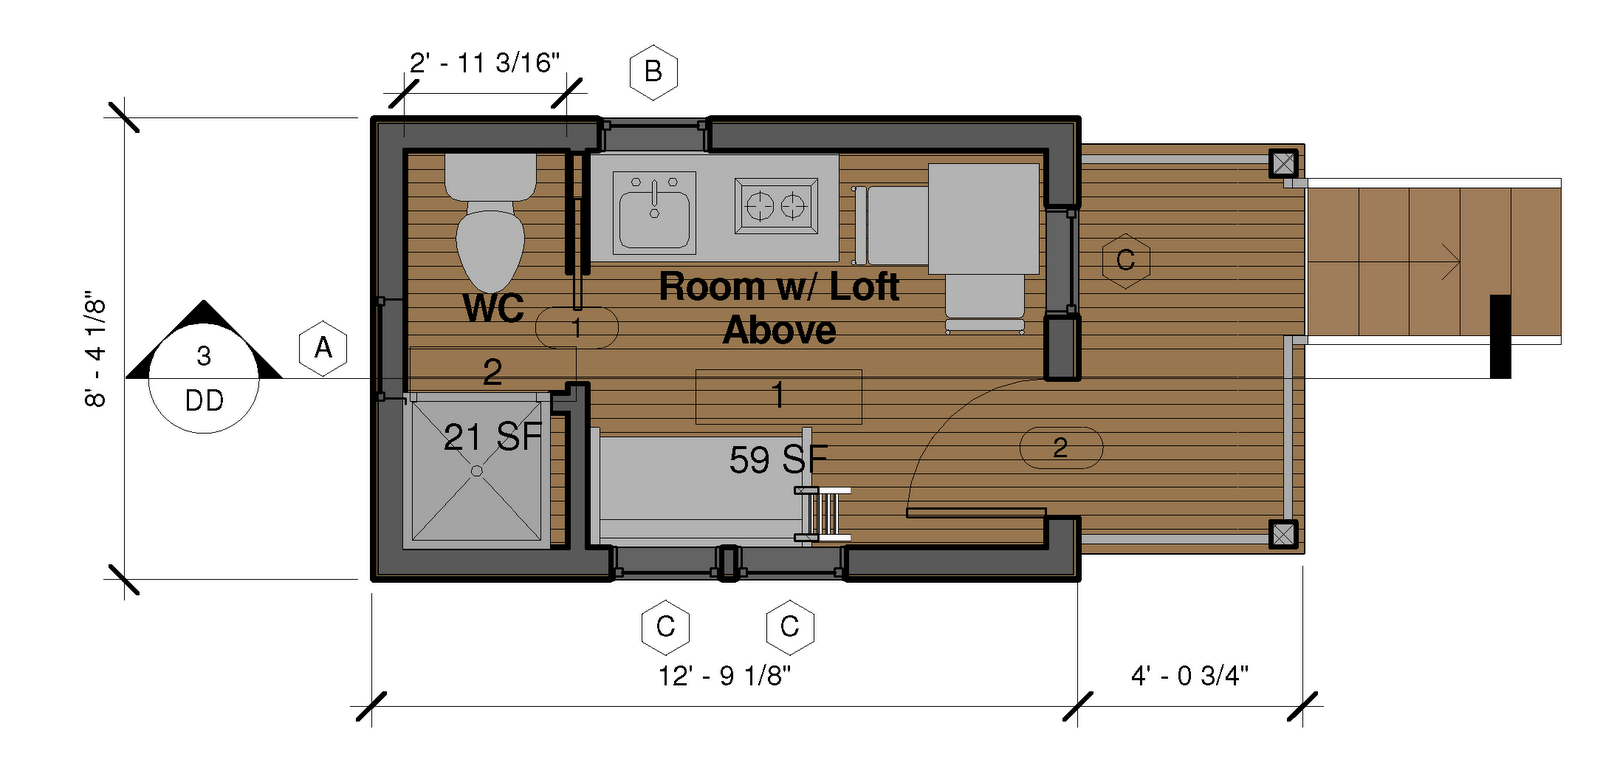 Revit learning club january 2011 for Tiny home blueprints free